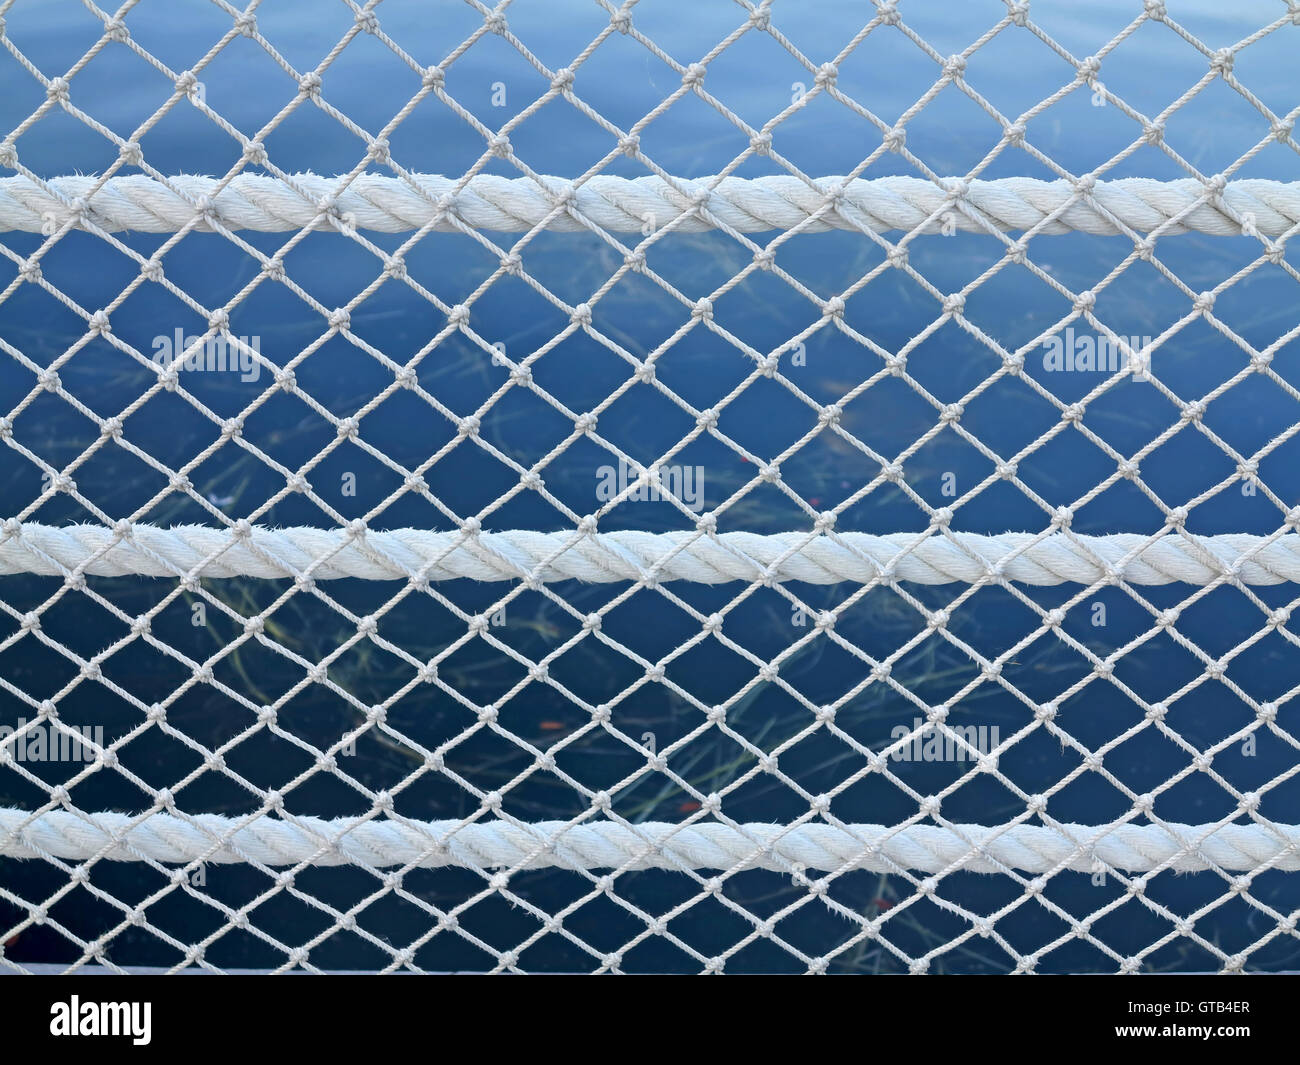 Rope and Net pattern with a lake behind - Stock Image